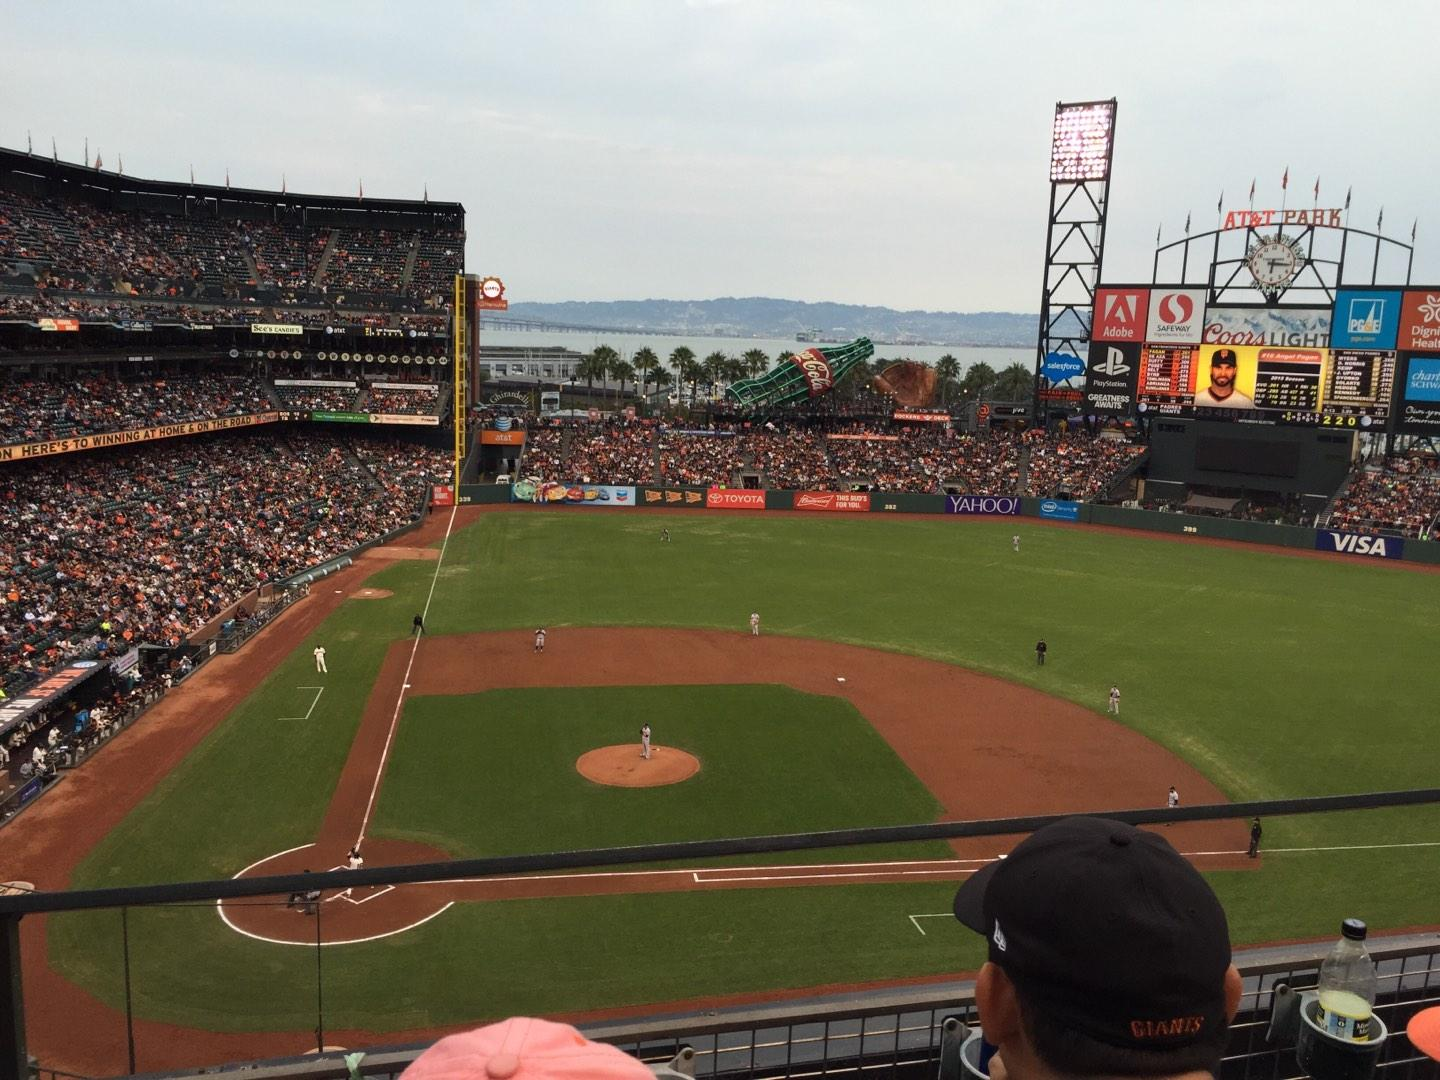 AT&T Park Section 310 Row B Seat 17